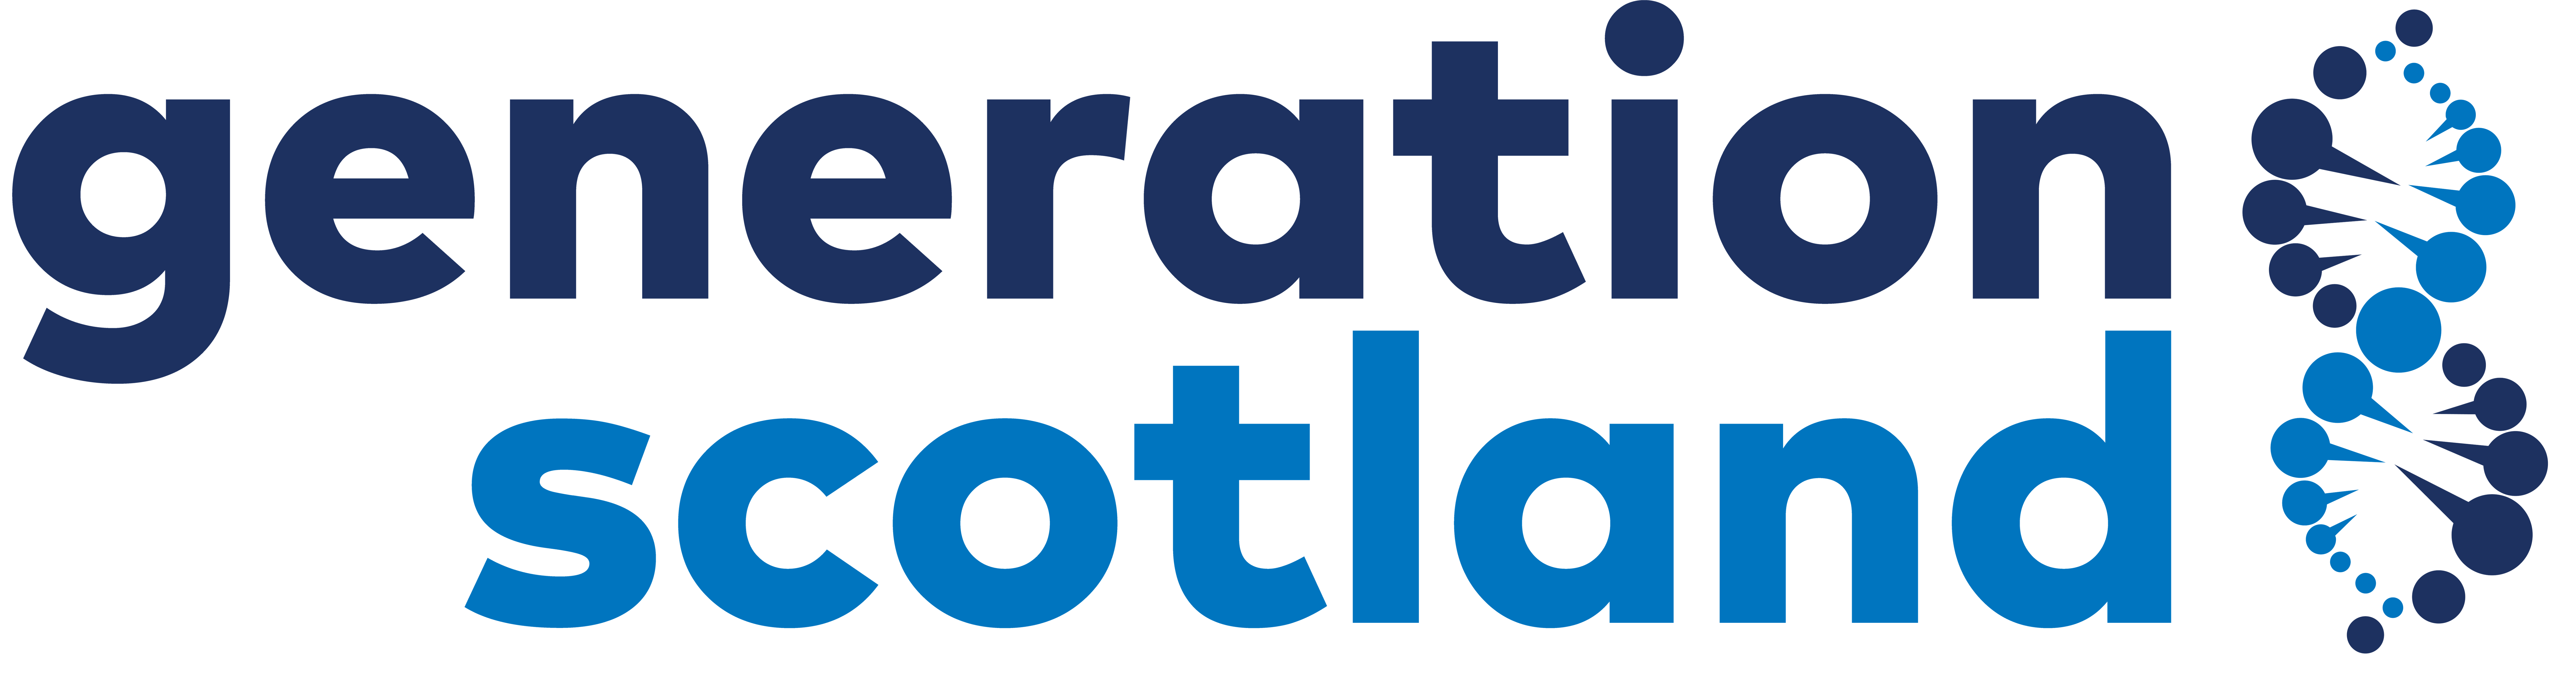 Generation Scotland logo